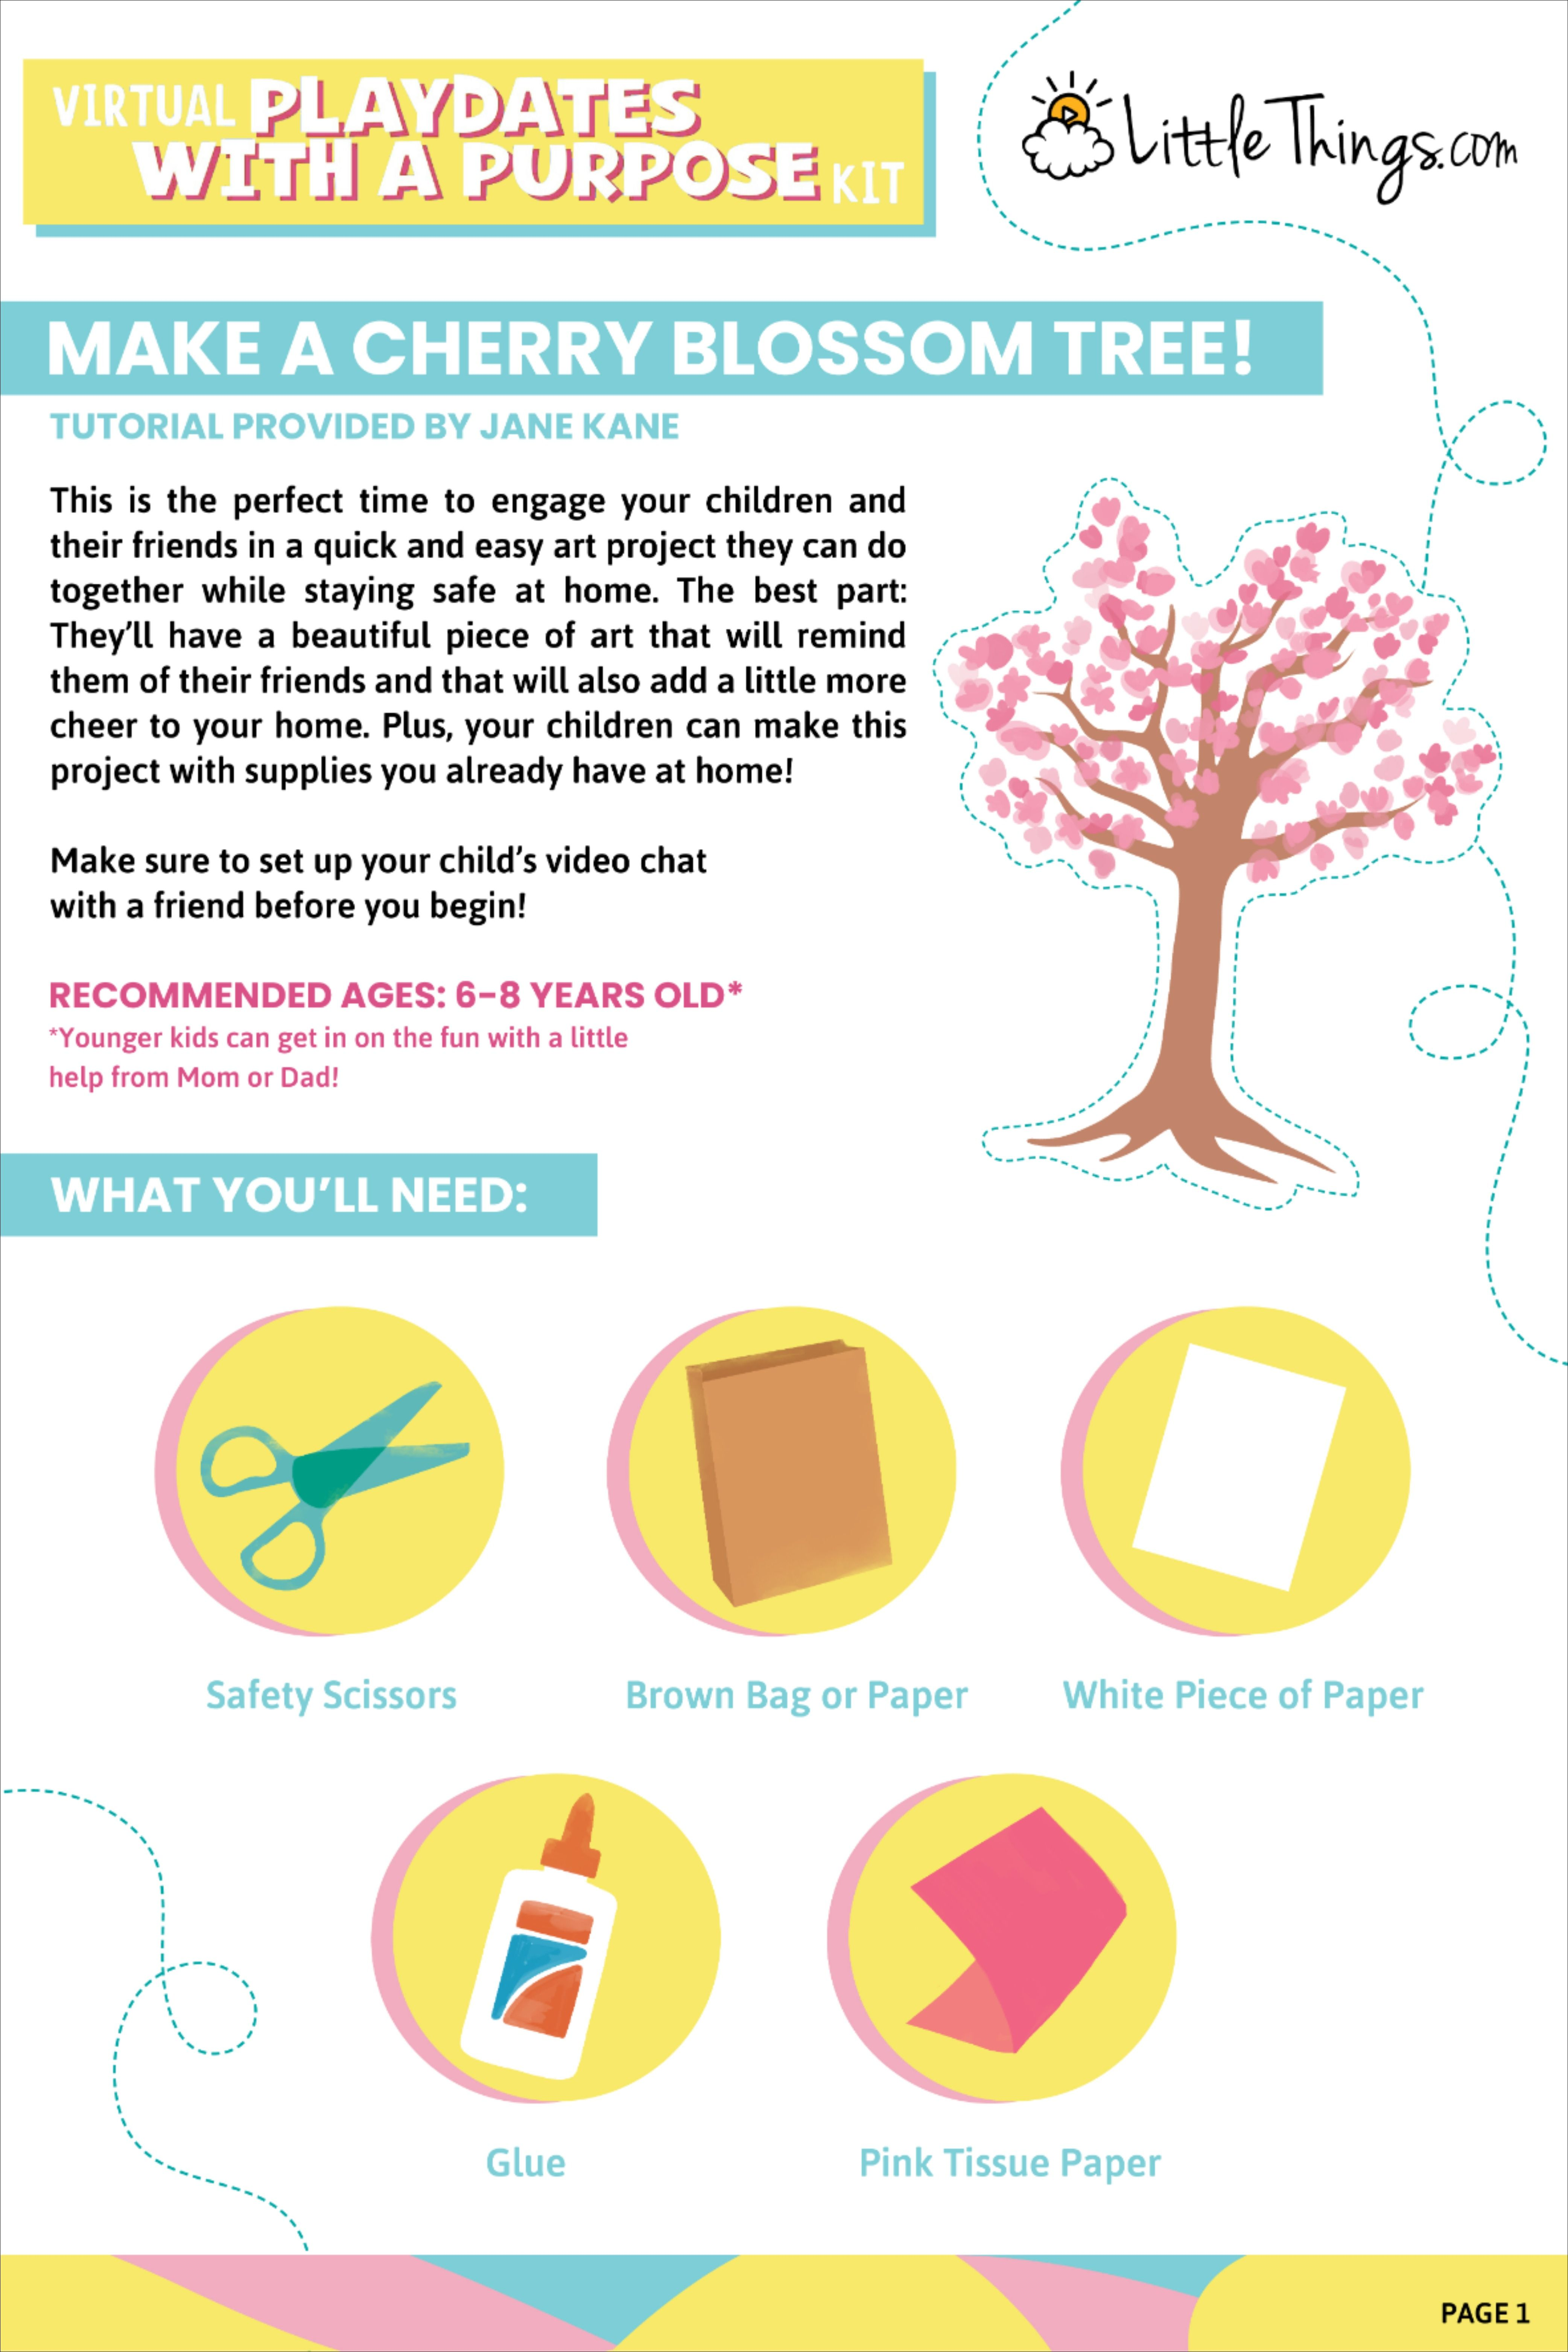 Now is the perfect time to engage your kids and their friends in a quick and easy project that they can do on their own with materials you have around the house! Our #virtualplaydate kit has everything your children need to make their own #cherryblossomtree in 5 easy steps. This project should only take around 30 minutes and is ideal for children aged 6-8 years old. #kidsartproject #diykids #momlife